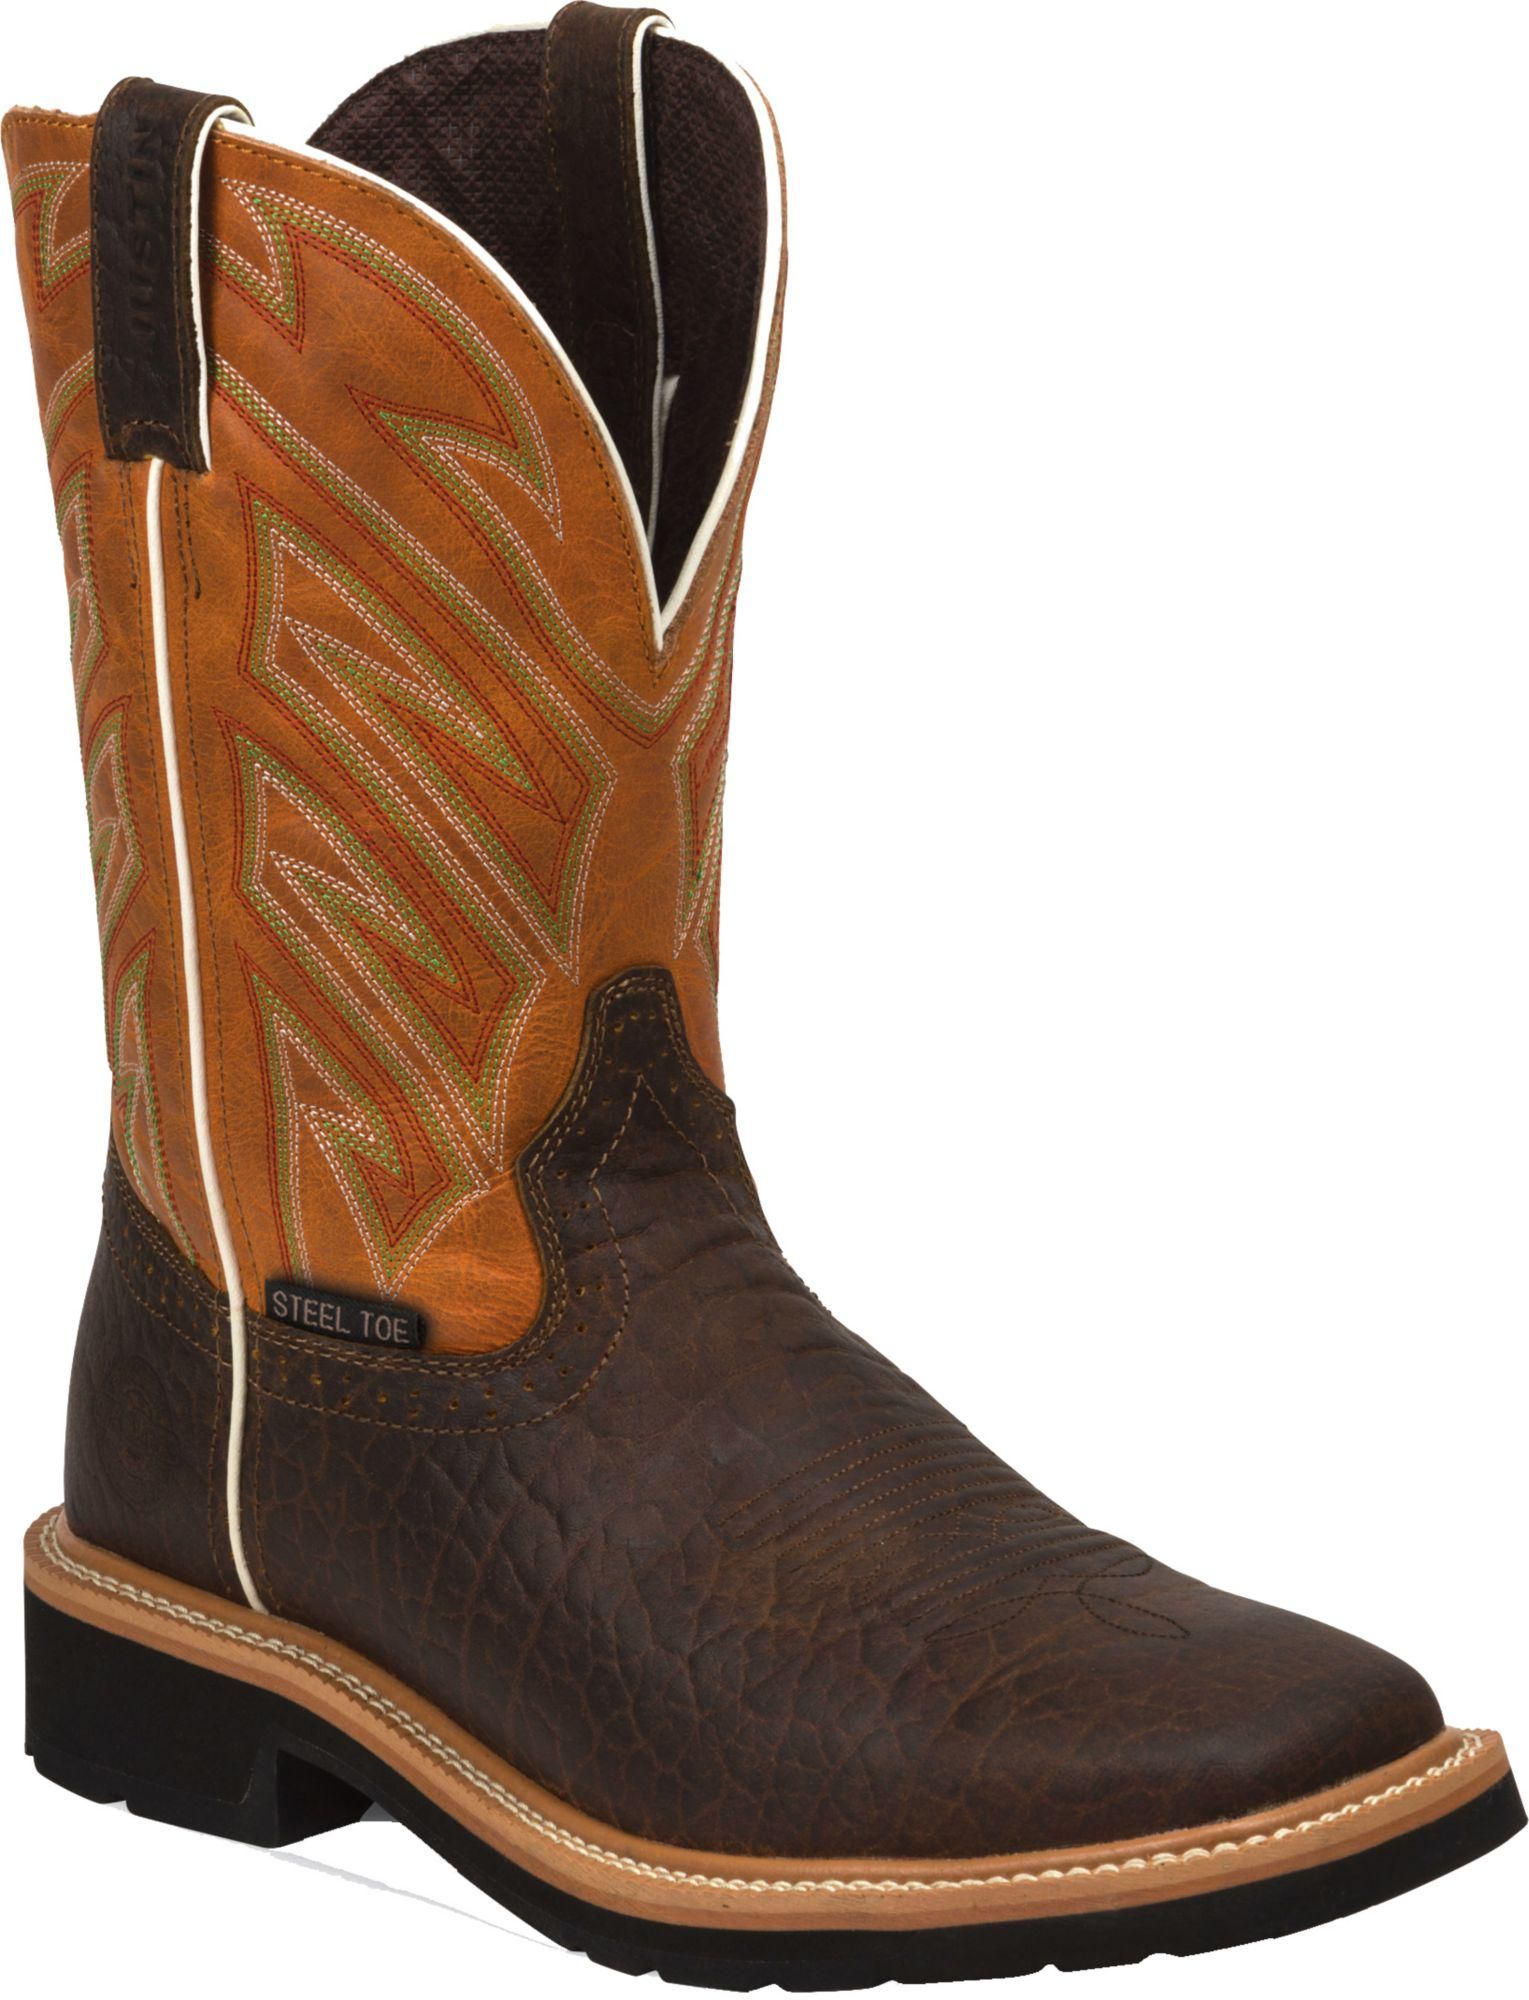 94d2039fb40 Lyst - Justin Boots Justin Stampede Steel Toe Work Boots in Brown